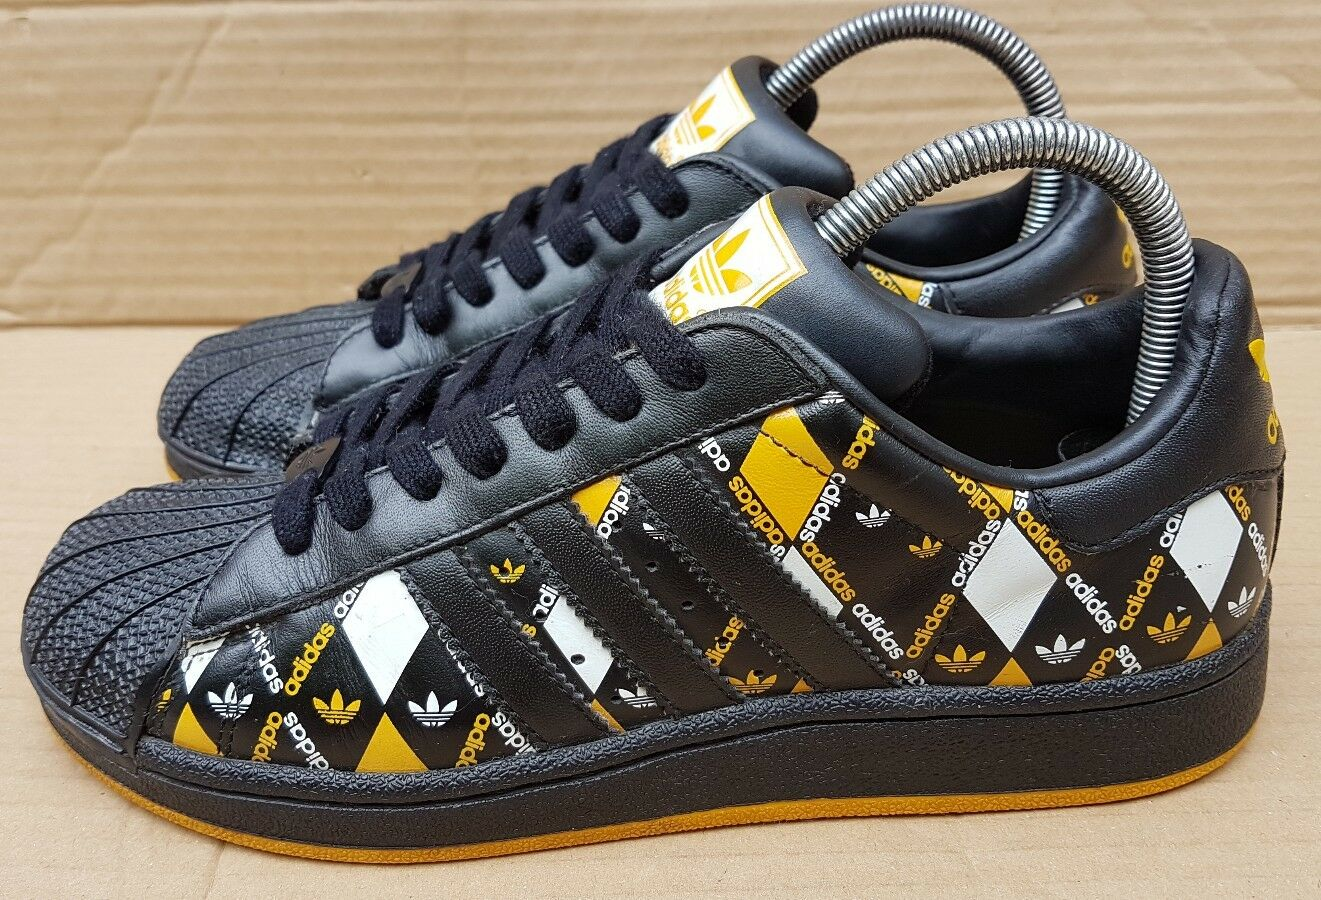 ADIDAS SUPERSTAR TRAINERS BLACK YELLOW SIZE 4 UK RARE YELLOW BLACK WHITE DIAMOND EXCELLENT aa59c5